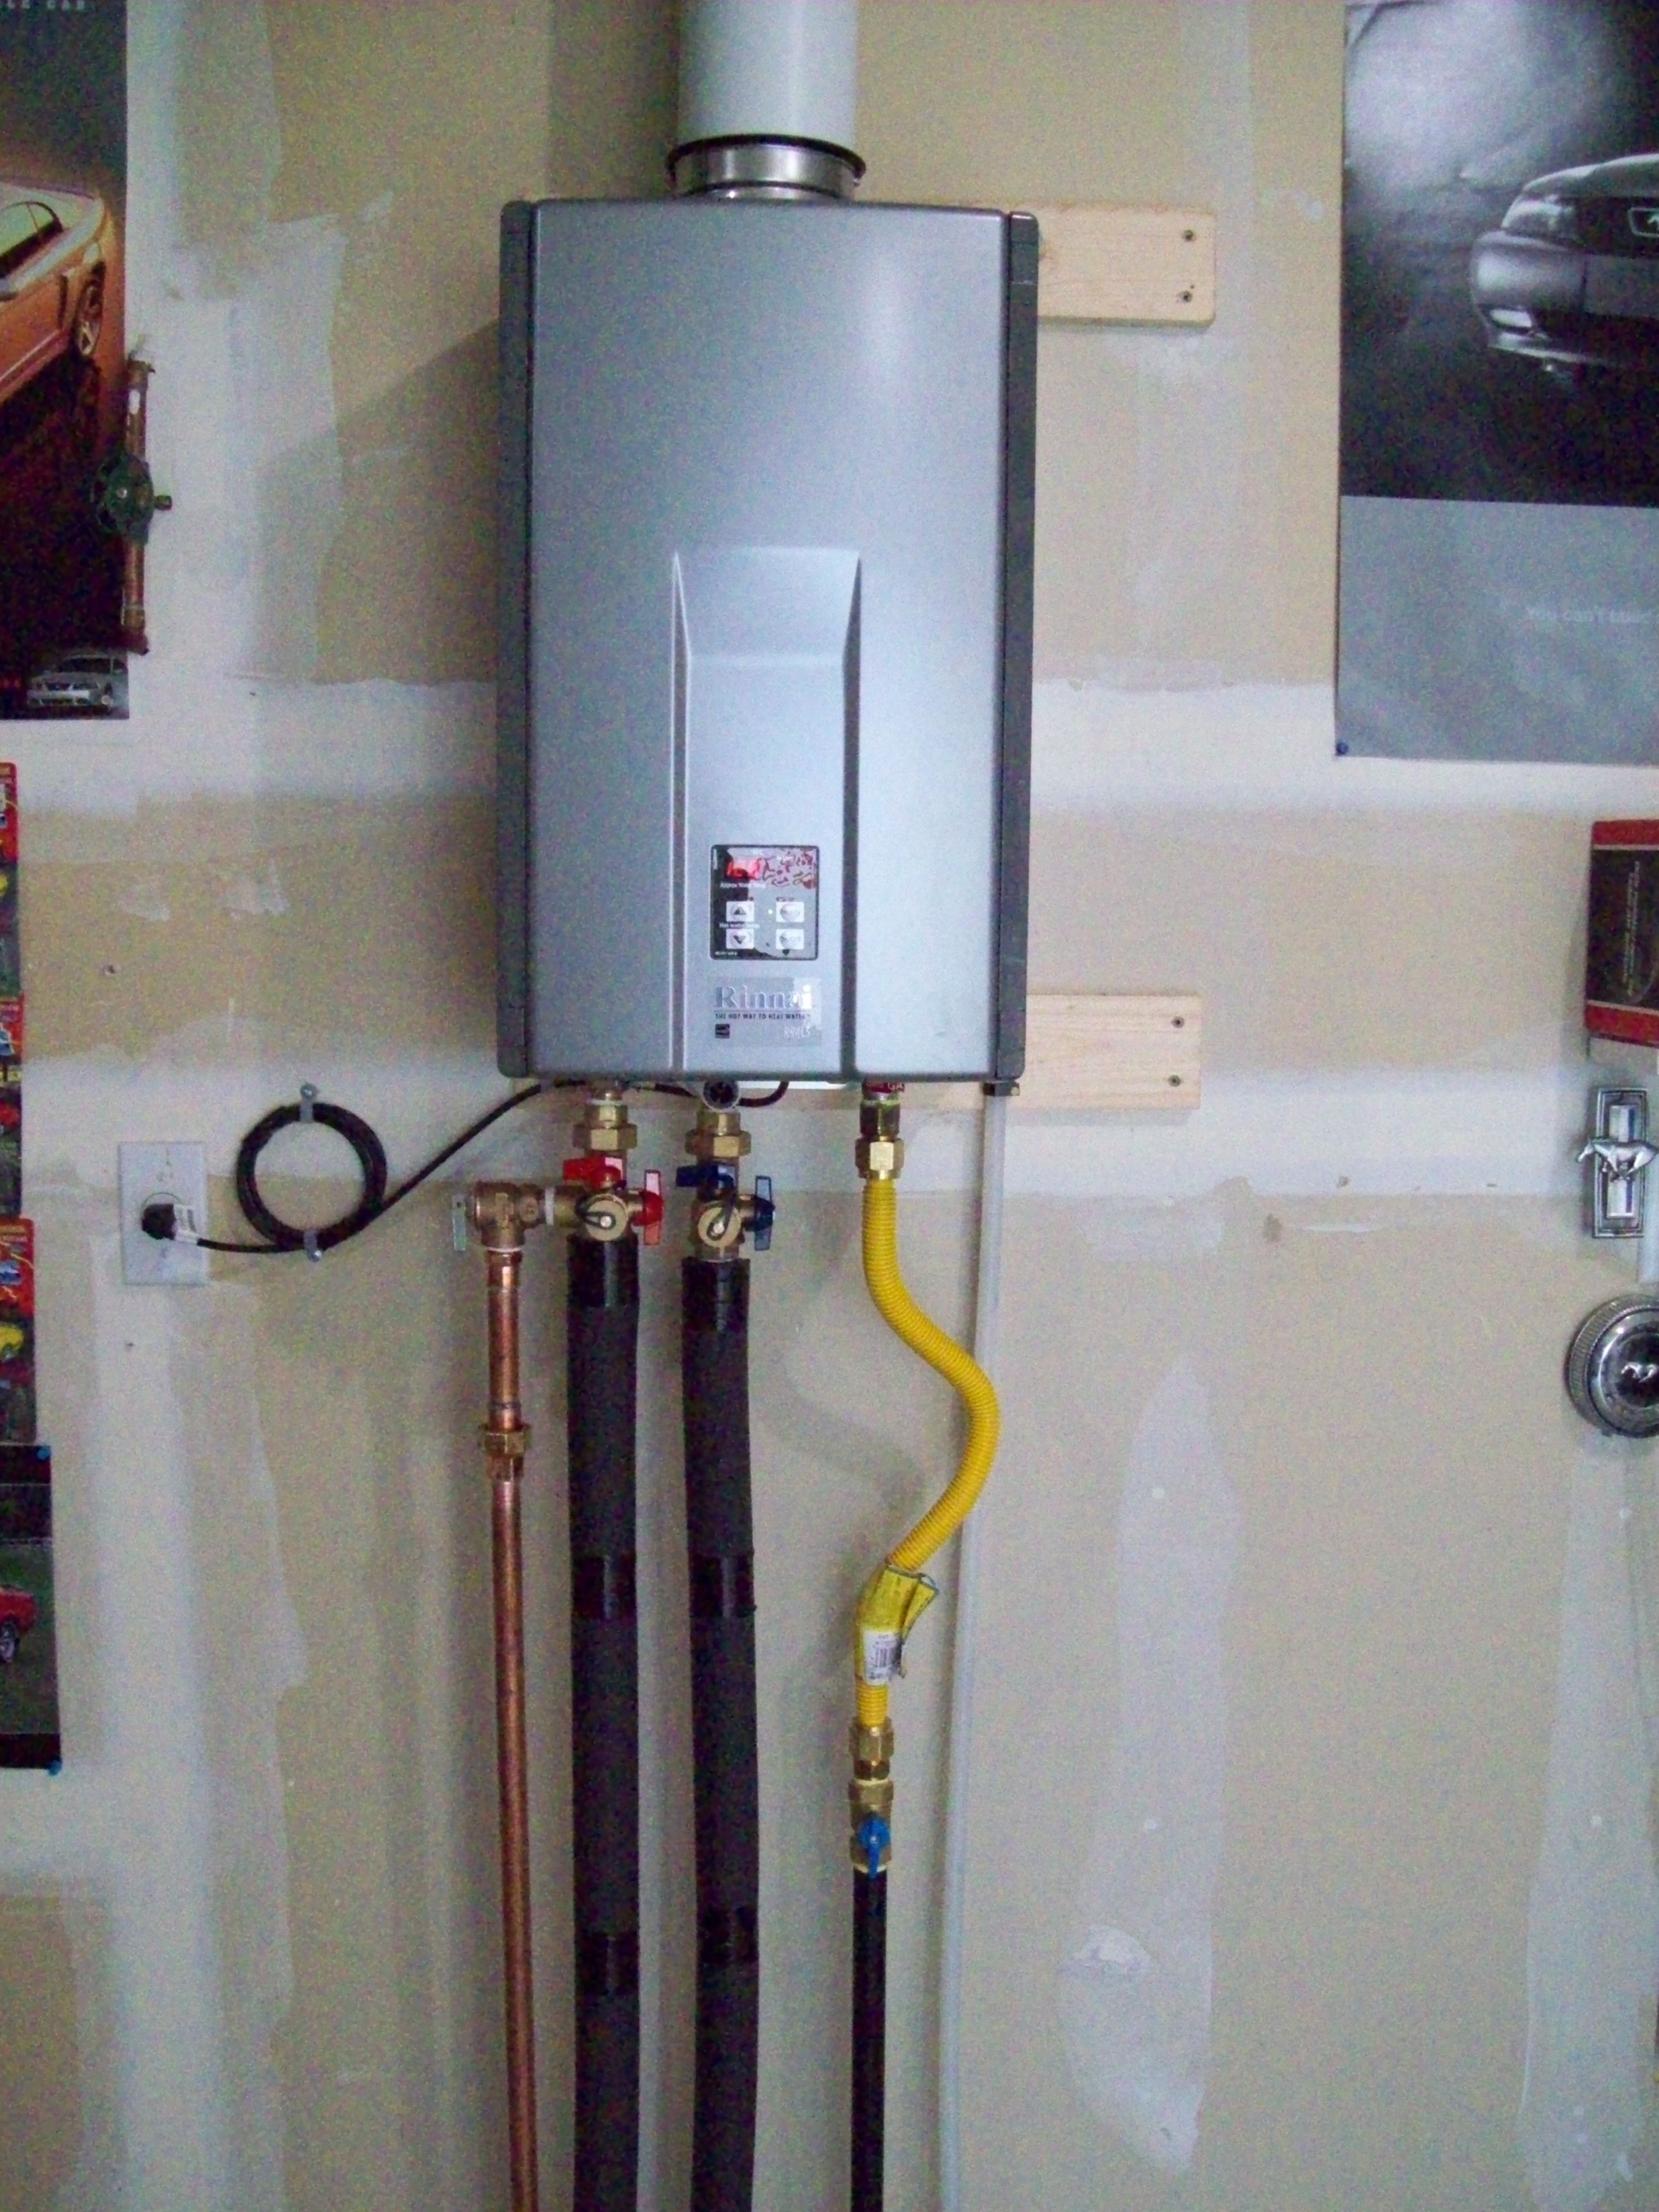 Rinnai R94lsi Tanklsess Water Heater White Knight Plumbing